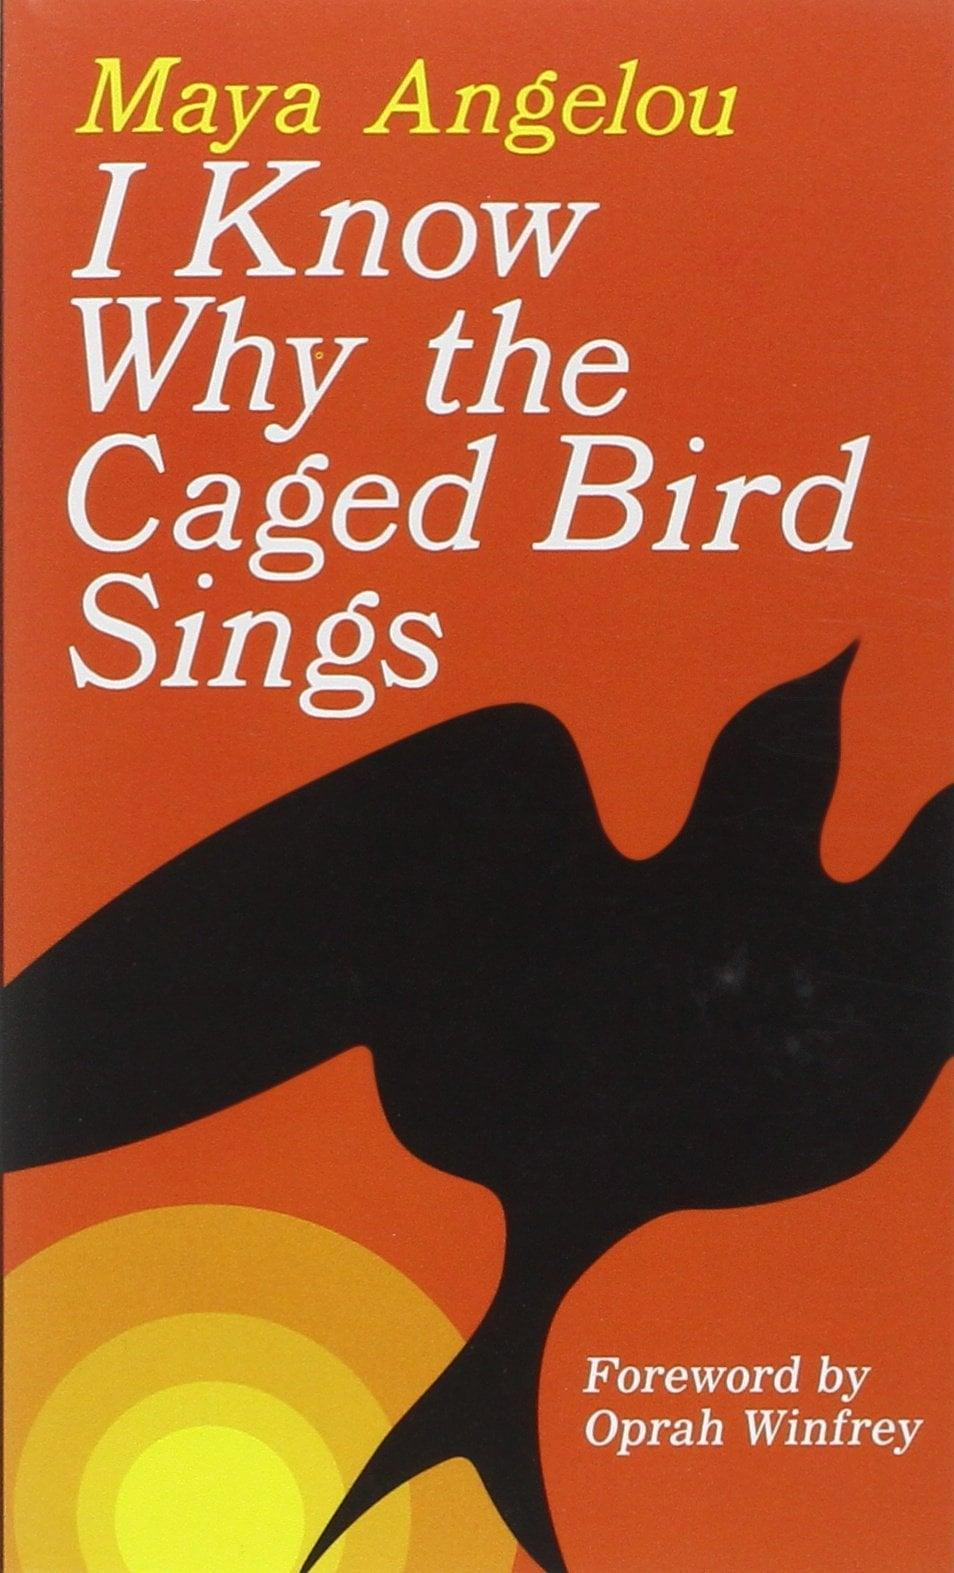 "<p><a href=""https://www.popsugar.com/buy?url=https%3A%2F%2Fwww.amazon.com%2FKnow-Why-Caged-Bird-Sings%2Fdp%2F0375507892%2Fref%3Dtmm_hrd_swatch_0%3F_encoding%3DUTF8%26qid%3D1488934390%26sr%3D1-1&p_name=%3Cb%3EI%20Know%20Why%20the%20Caged%20Bird%20Sings%3C%2Fb%3E%20by%20Maya%20Angelou&retailer=amazon.com&evar1=tres%3Auk&evar9=43250262&evar98=https%3A%2F%2Fwww.popsugar.com%2Flove%2Fphoto-gallery%2F43250262%2Fimage%2F43252270%2FI-Know-Why-Caged-Bird-Sings-Maya-Angelou&list1=books%2Cwomen%2Creading%2Cinternational%20womens%20day%2Cwomens%20history%20month&prop13=api&pdata=1"" class=""link rapid-noclick-resp"" rel=""nofollow noopener"" target=""_blank"" data-ylk=""slk:I Know Why the Caged Bird Sings by Maya Angelou""><b>I Know Why the Caged Bird Sings</b> by Maya Angelou</a> </p>"